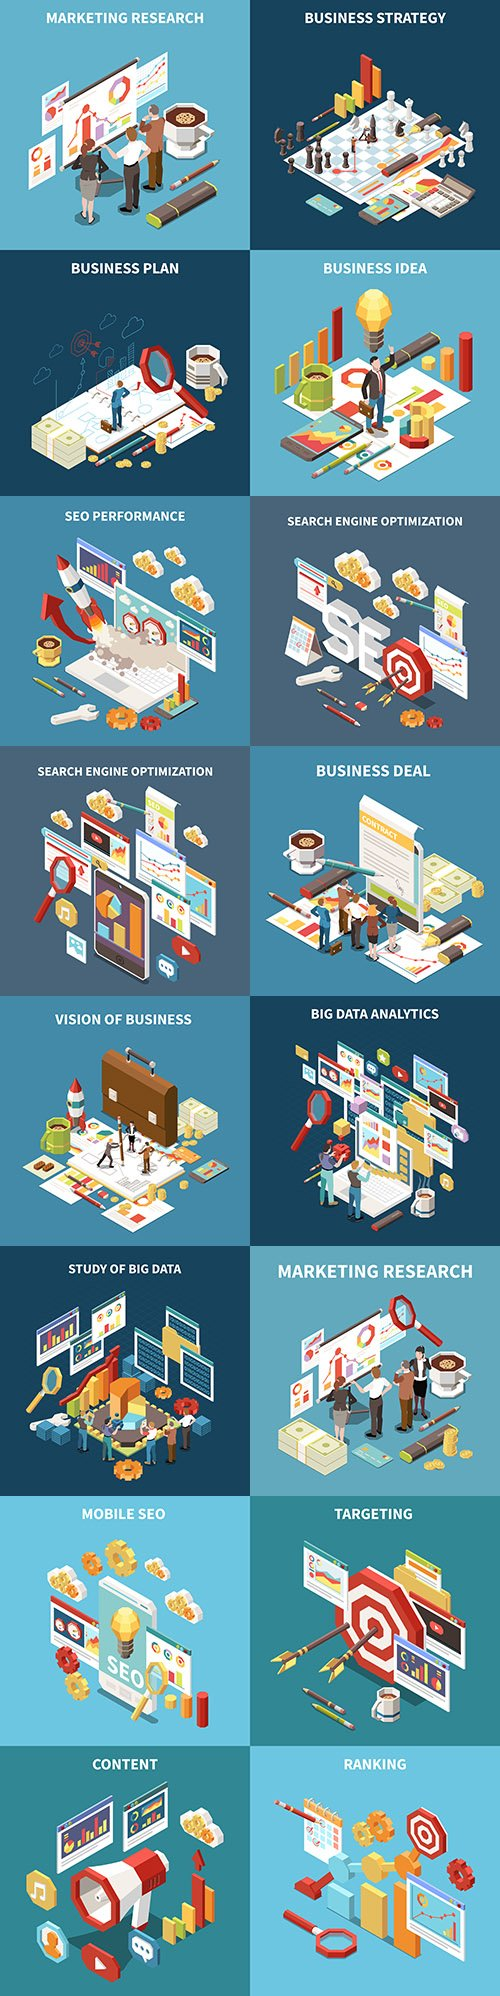 Isometric 3d business strategy and marketing illustrations